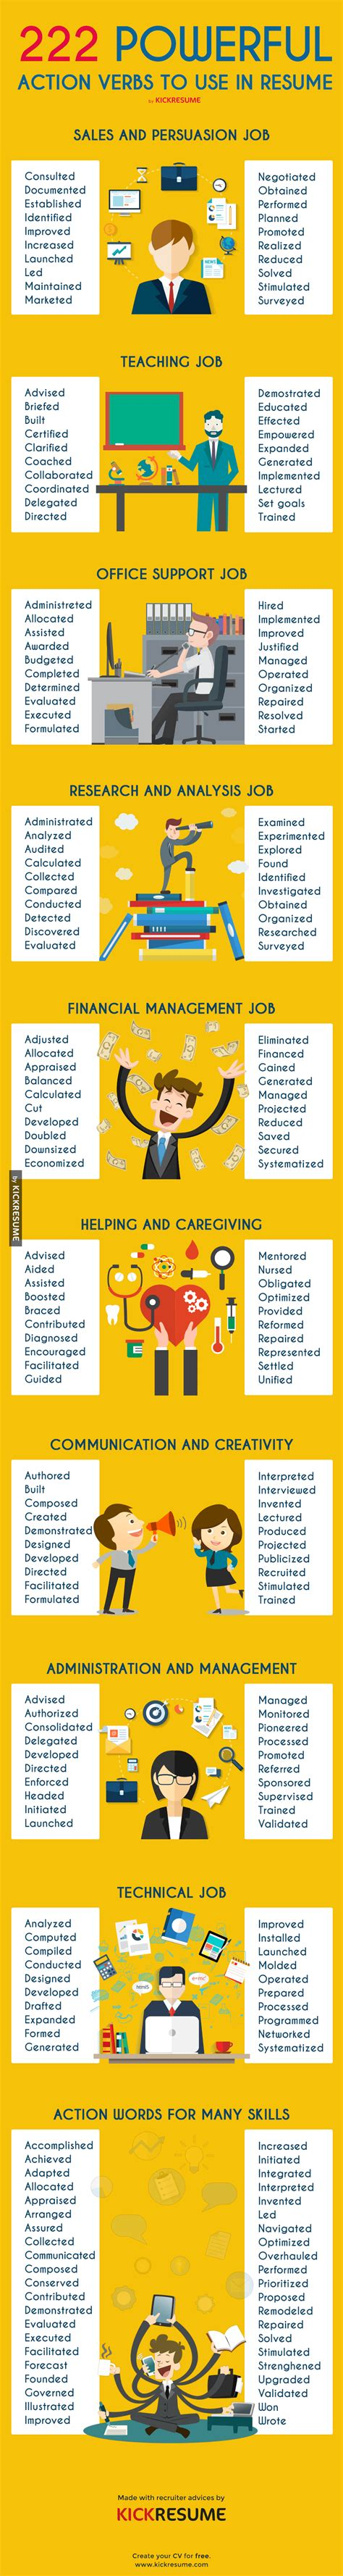 powerful action verbs for a resume ulm university of louisiana at